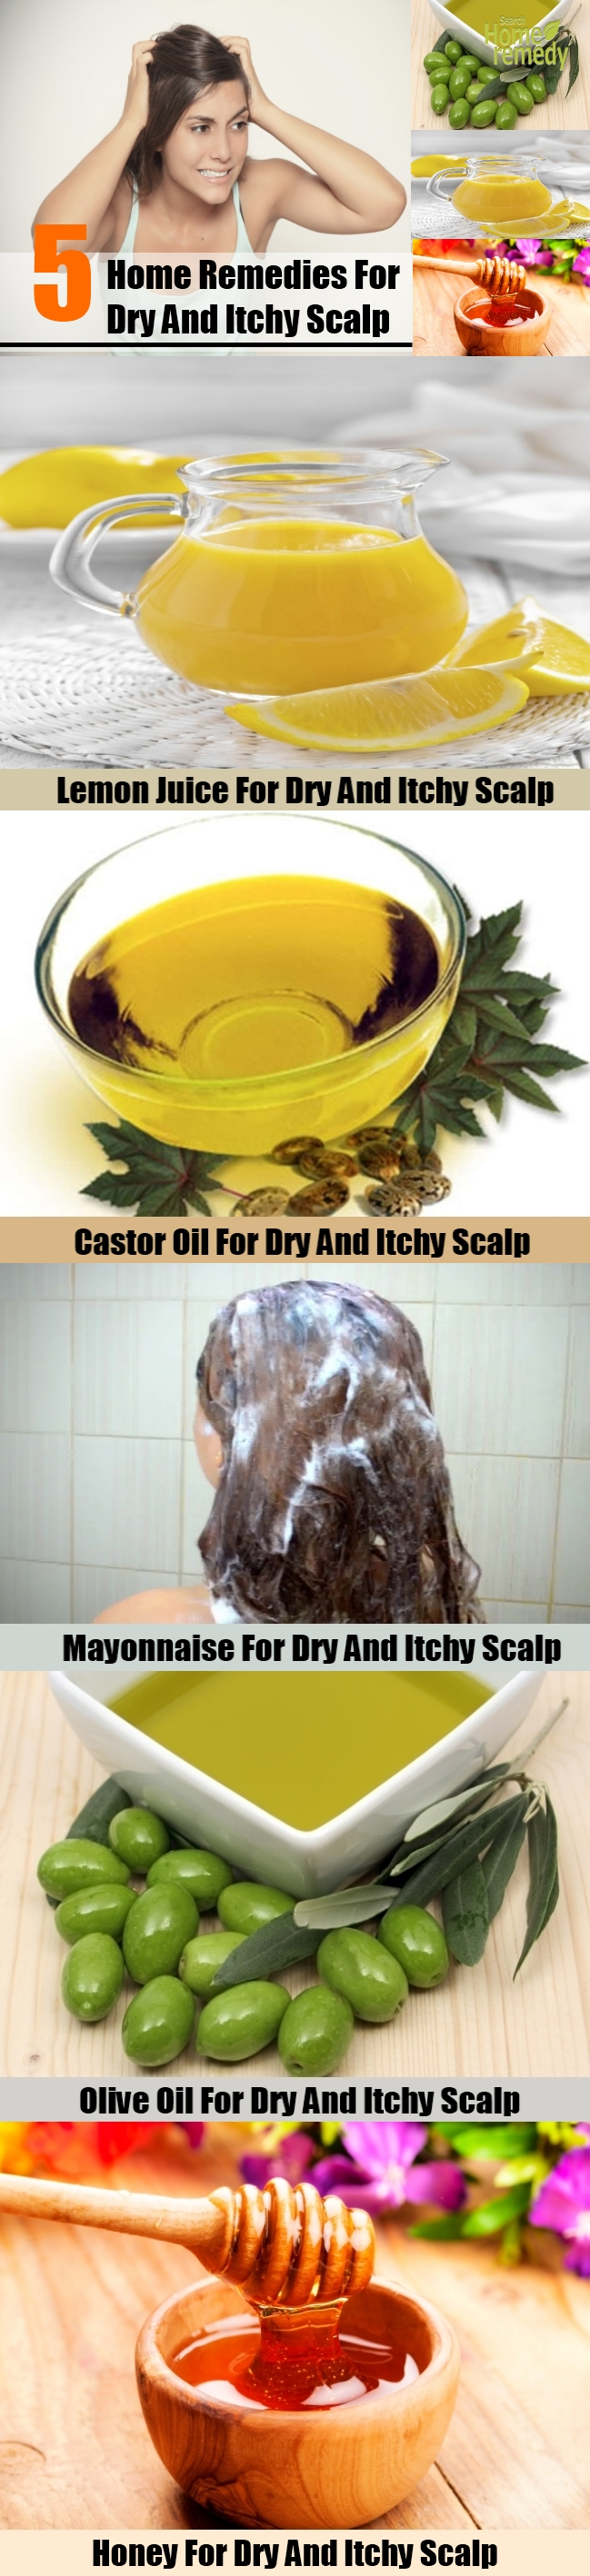 5 Home Remedies For Dry And Itchy Scalp